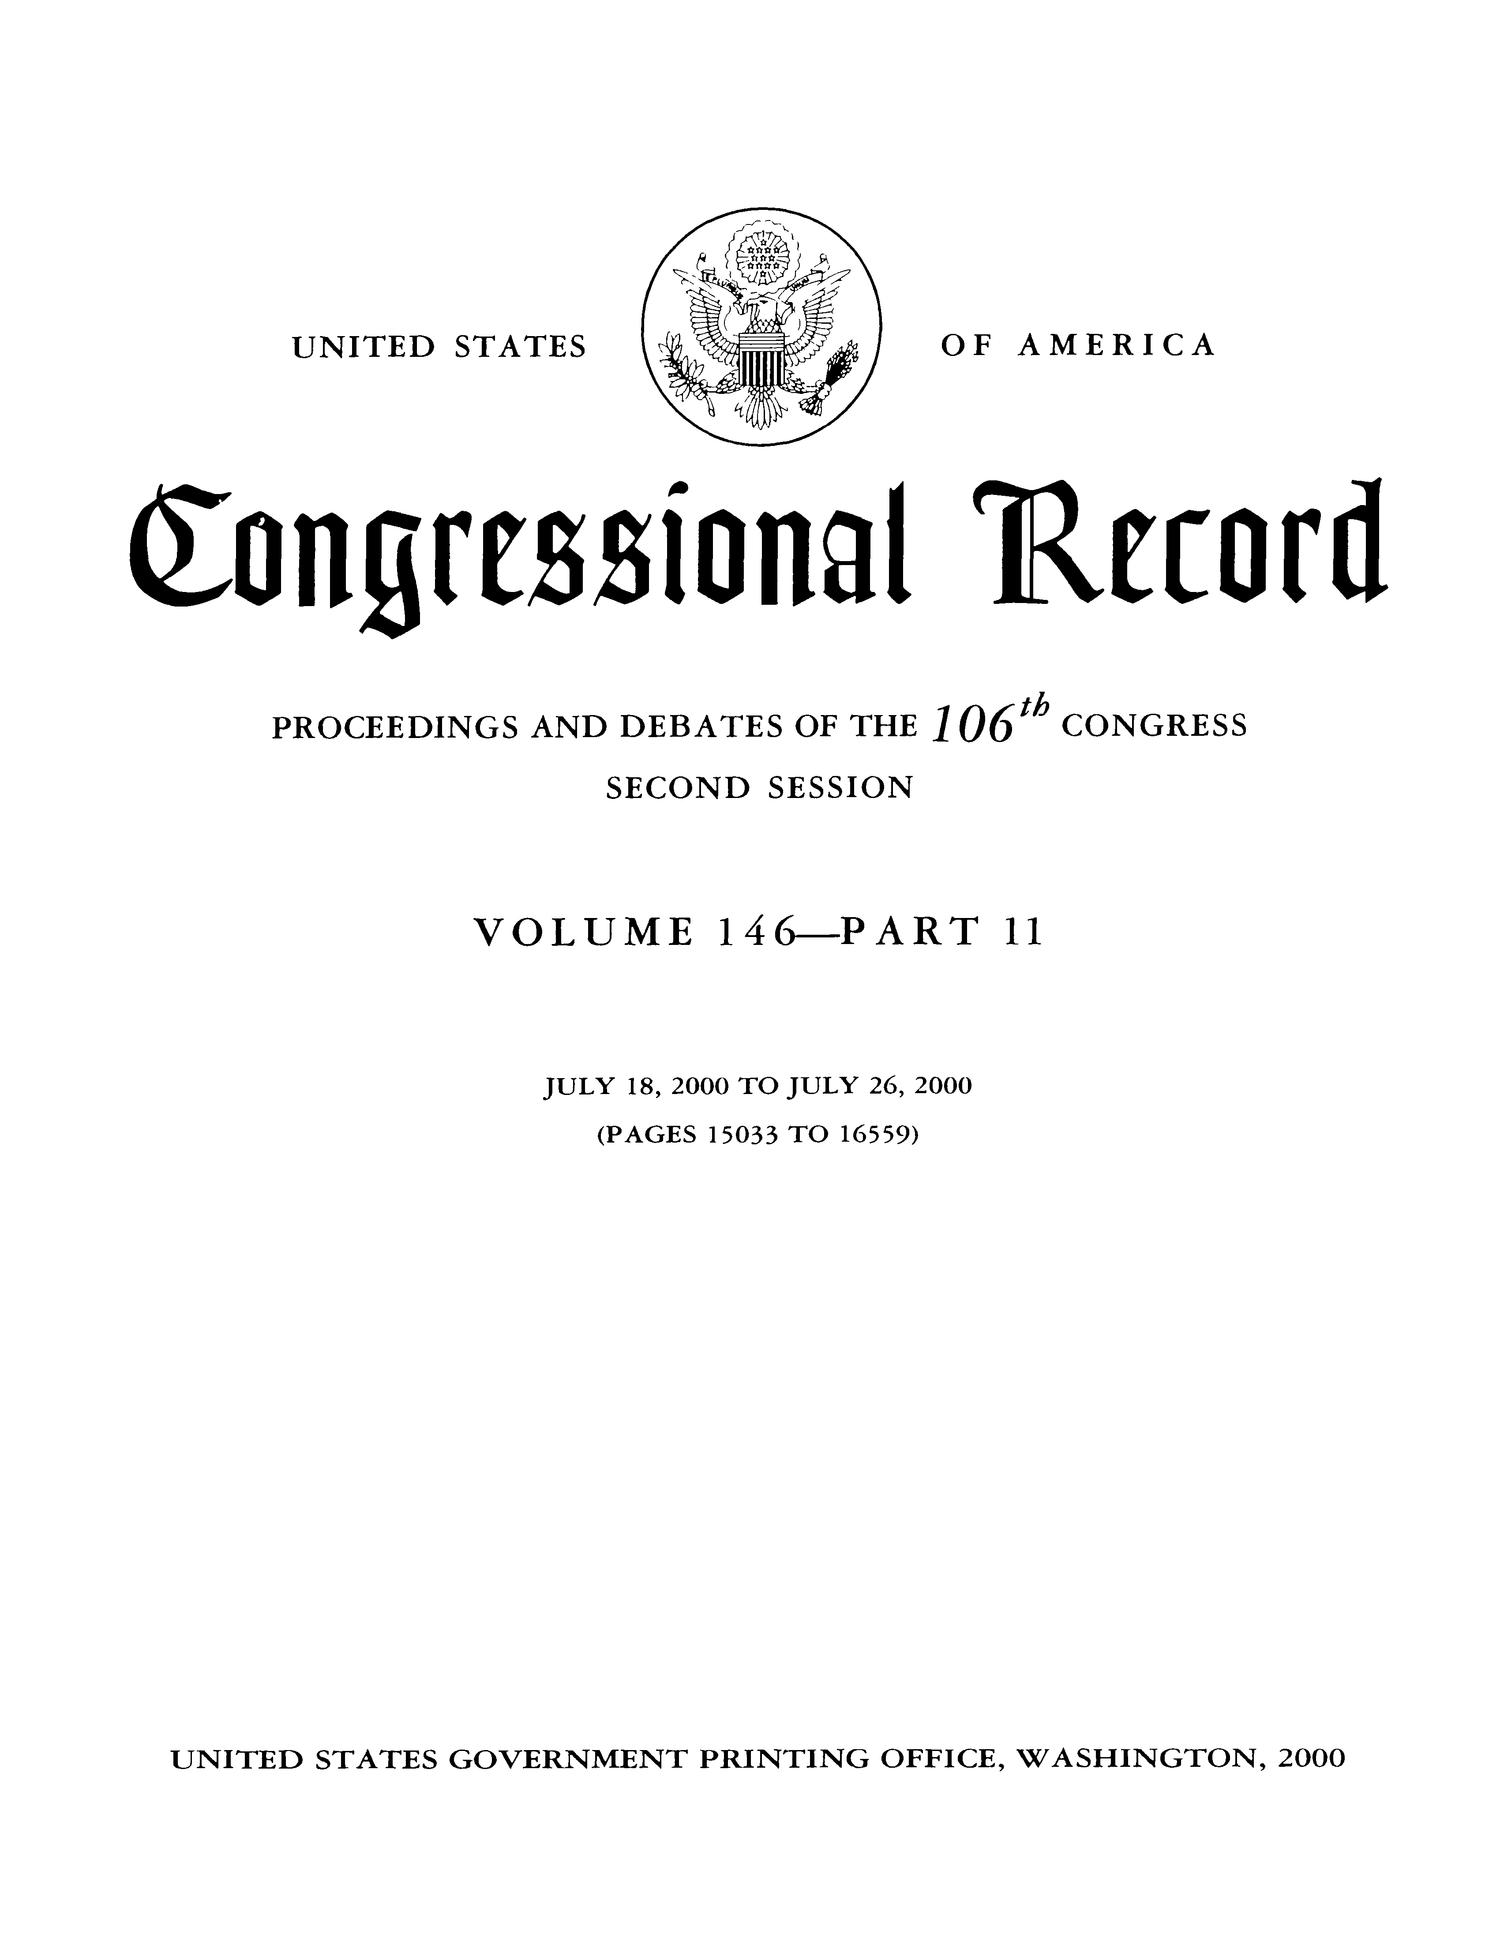 Congressional Record: Proceedings and Debates of the 106th Congress, Second Session, Volume 146, Part 11                                                                                                      Title Page